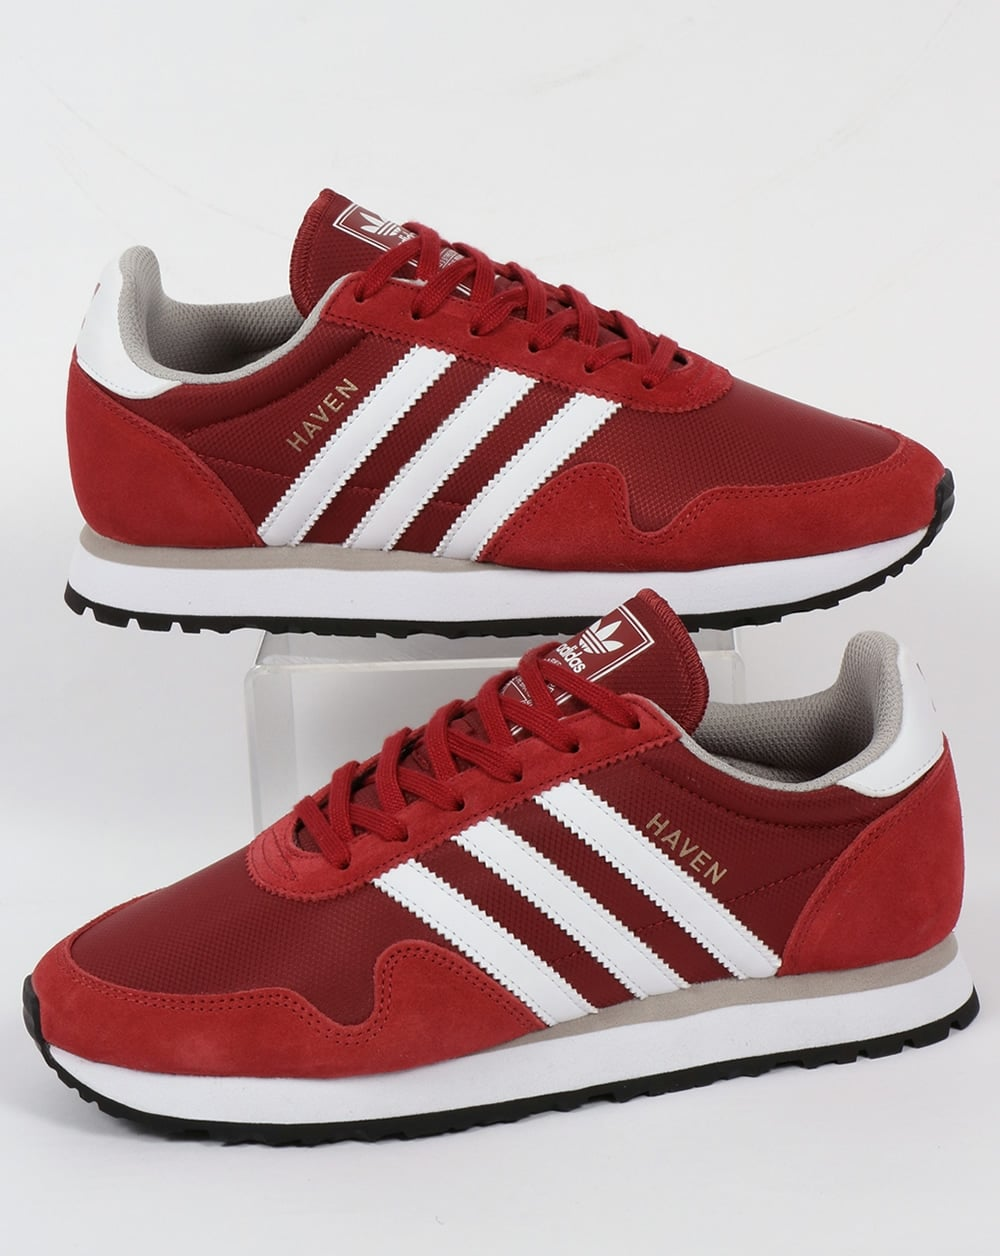 Welcome to adidas Shop for adidas shoes, clothing and view new collections for Here To Create· Free Shipping & Returns· Iconic & Timeless Styles· Innovative TechnologyTypes: EQT, NMD, UltraBOOST, Superstar, UltraBOOST X, Stan Smith.